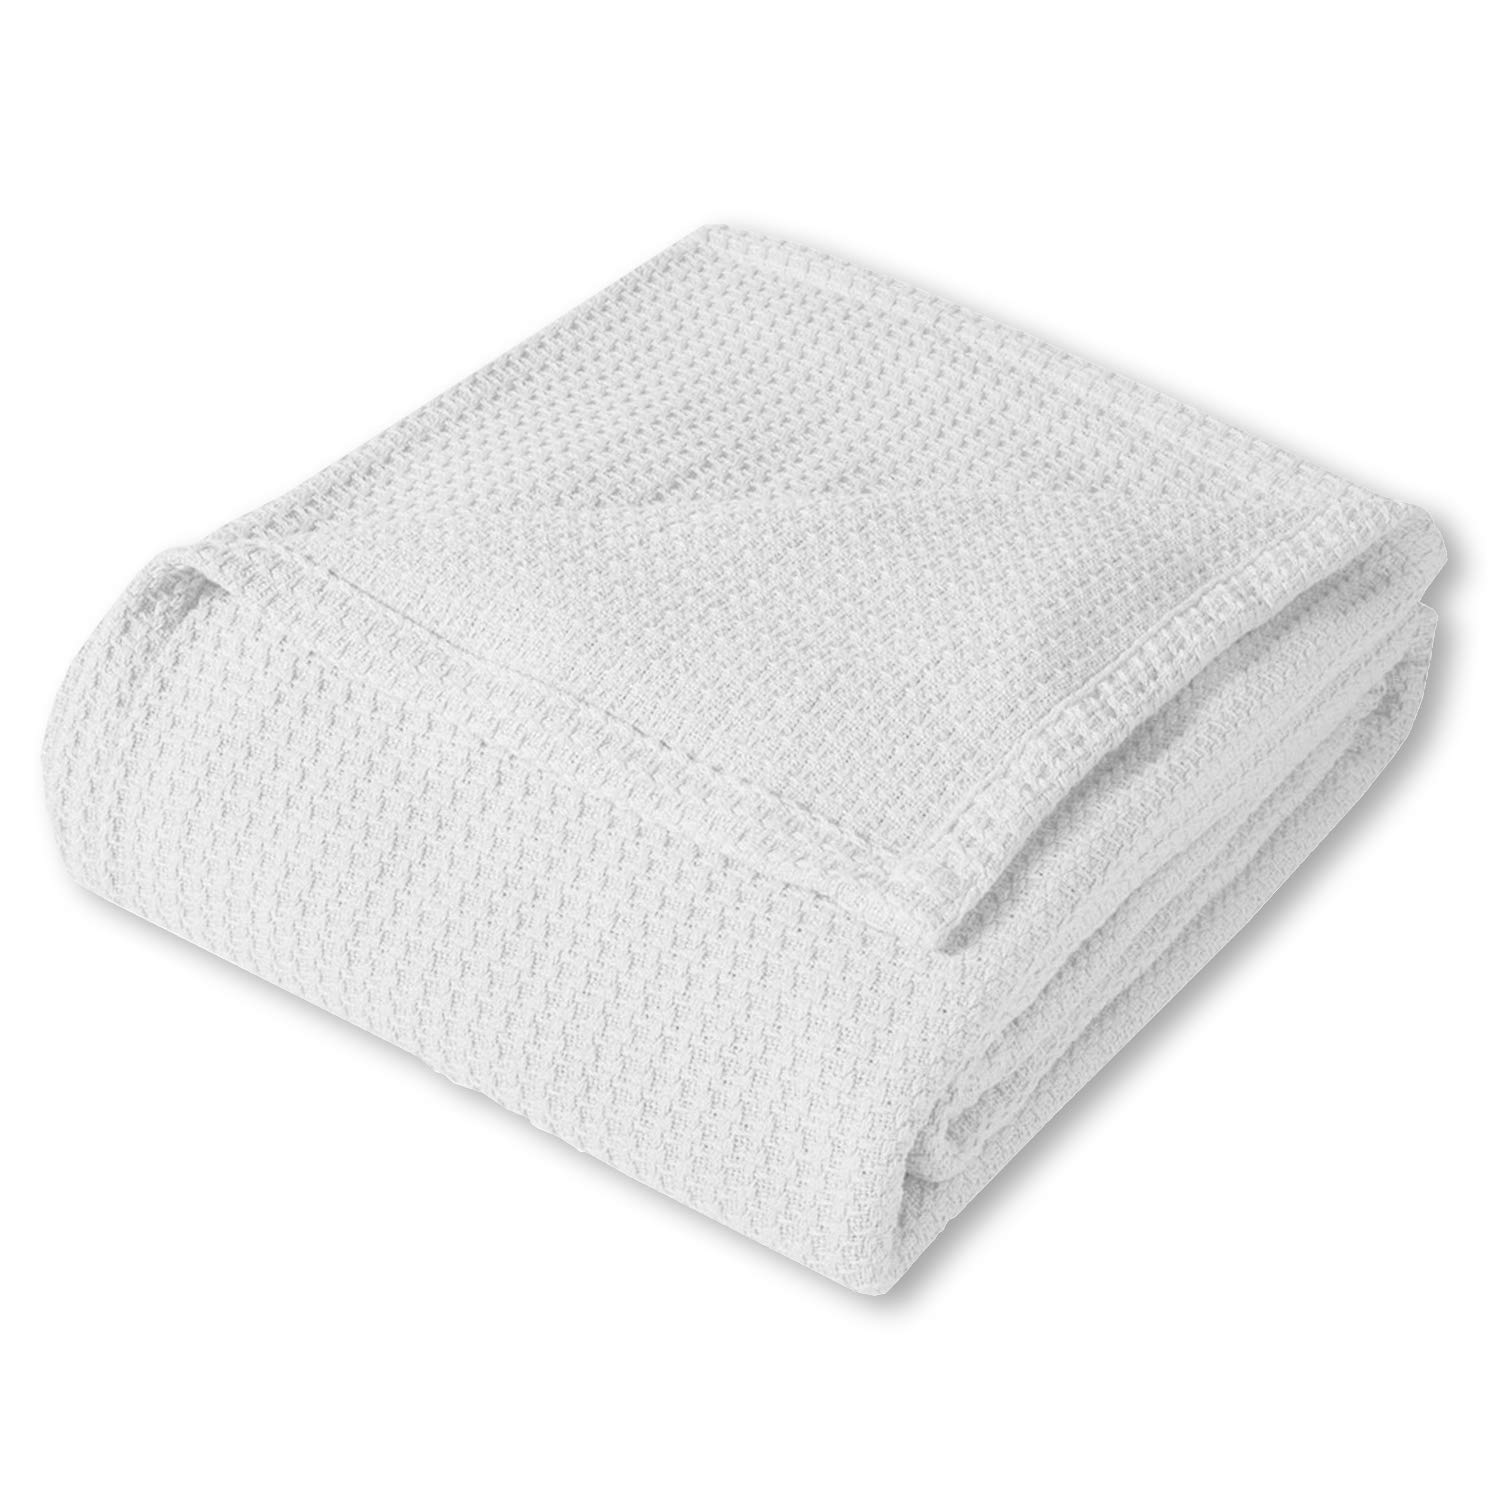 Sweet Home Collection 100% Fine Cotton Luxurious Basket Weave Blanket, White